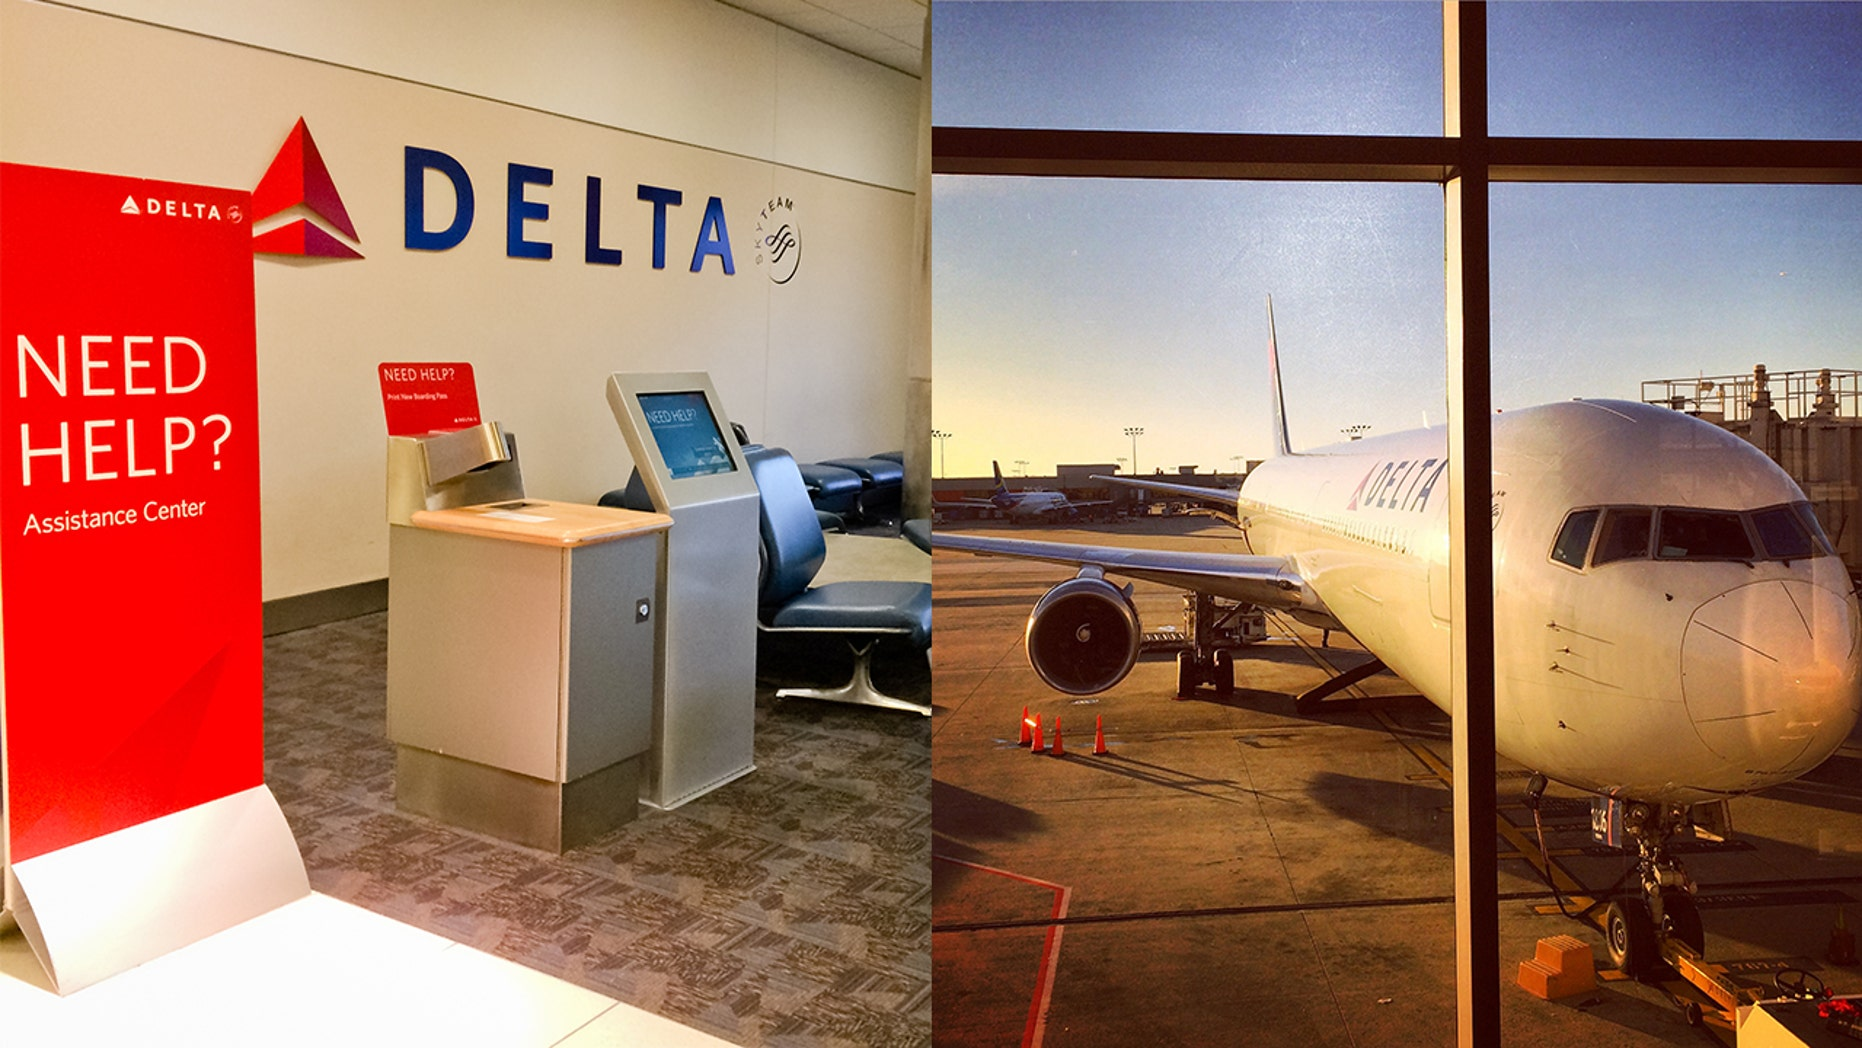 Four women claim Delta fired them for speaking Korean and reporting sexual harassment in the workplace.